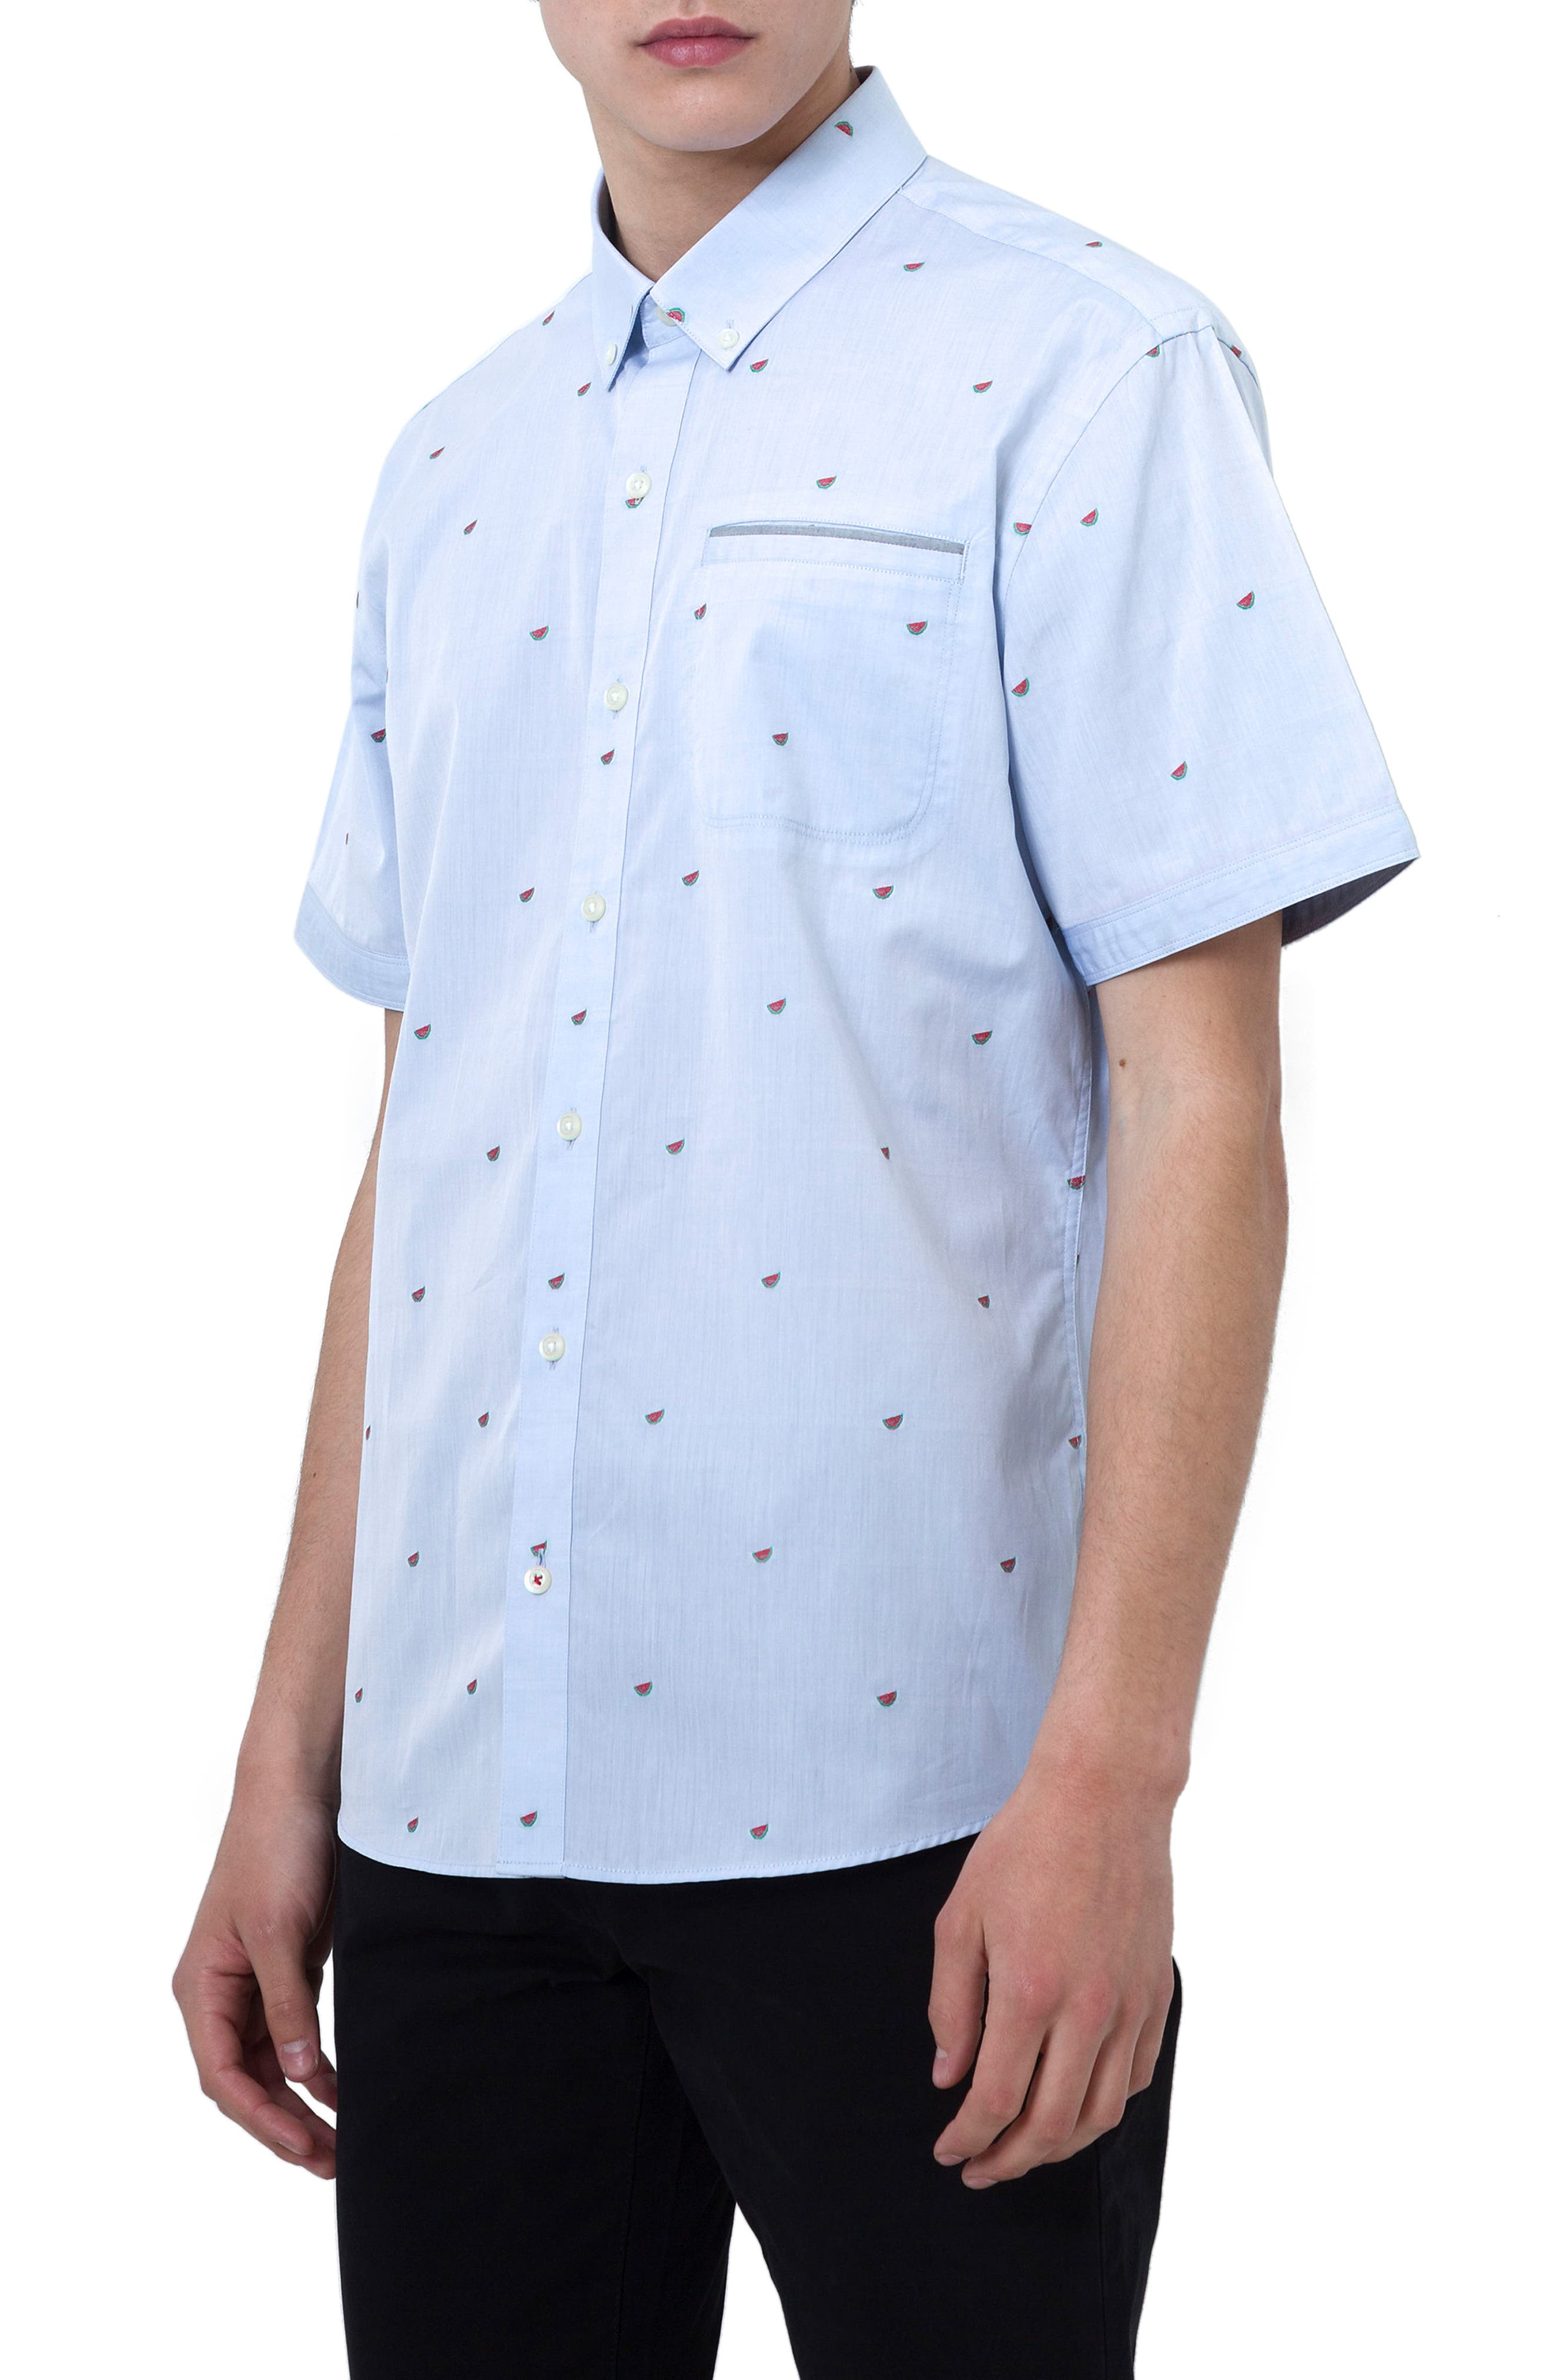 7 Diamonds Cool It Down Embroidered Woven Shirt